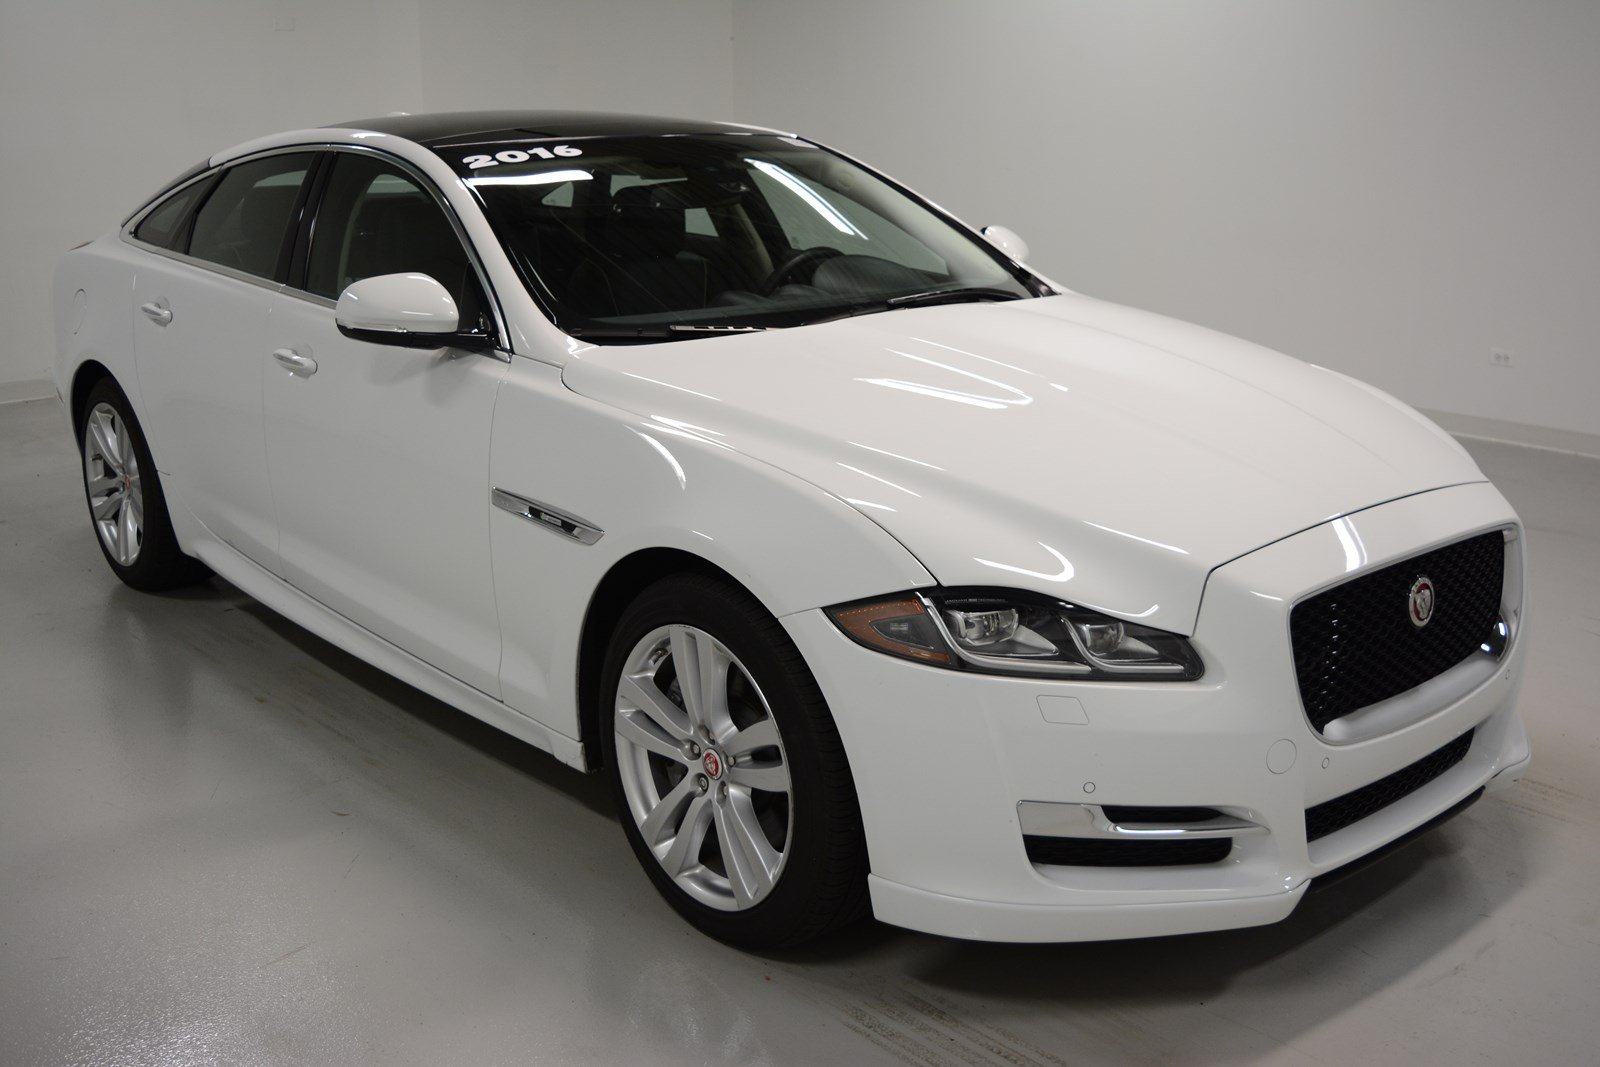 certified pre owned 2016 jaguar xj r sport 4dr car in elmhurst j1556 jaguar elmhurst. Black Bedroom Furniture Sets. Home Design Ideas